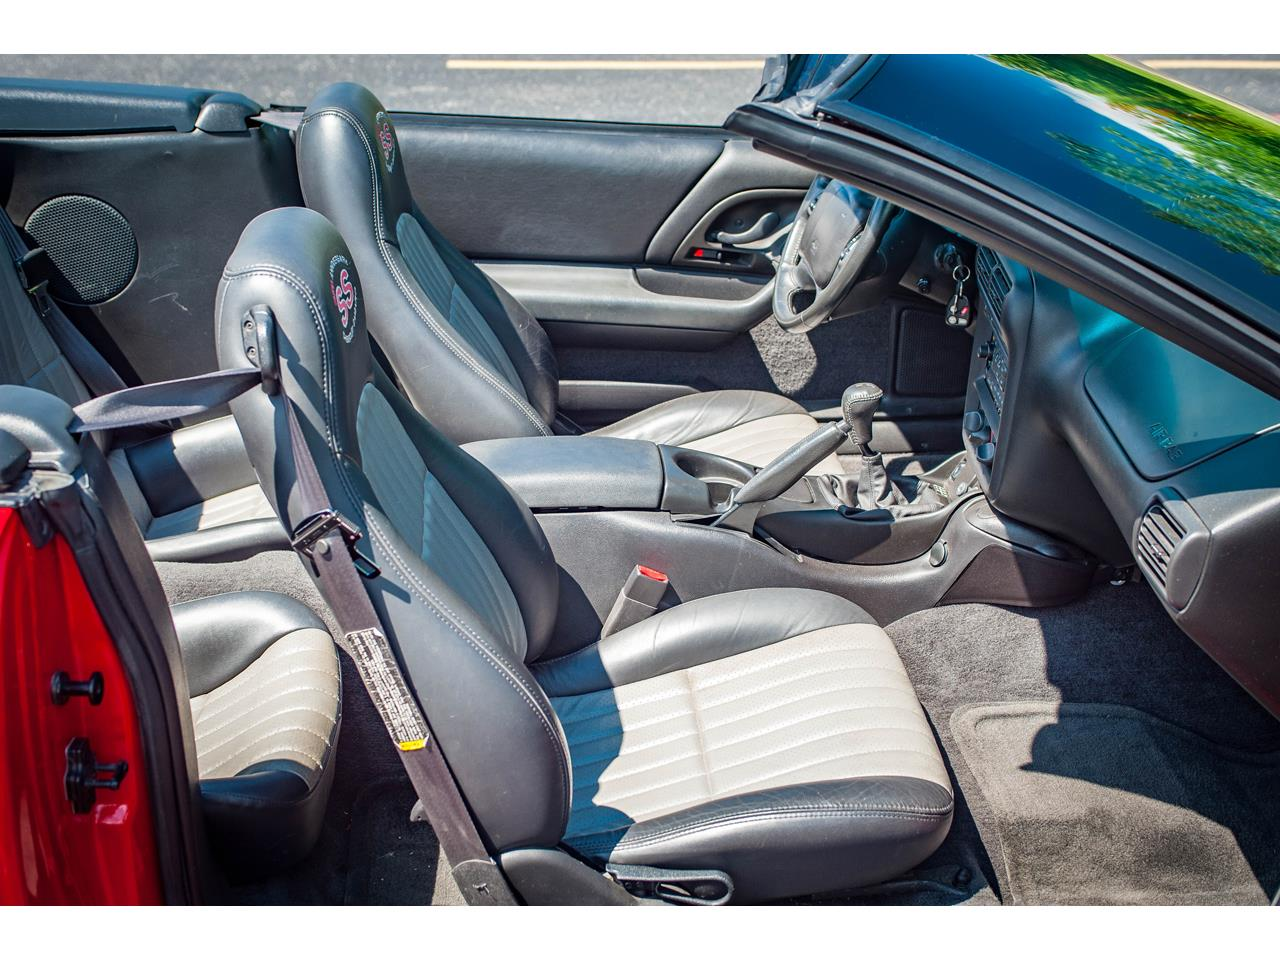 Large Picture of 2002 Camaro located in O'Fallon Illinois Offered by Gateway Classic Cars - St. Louis - QB9Z